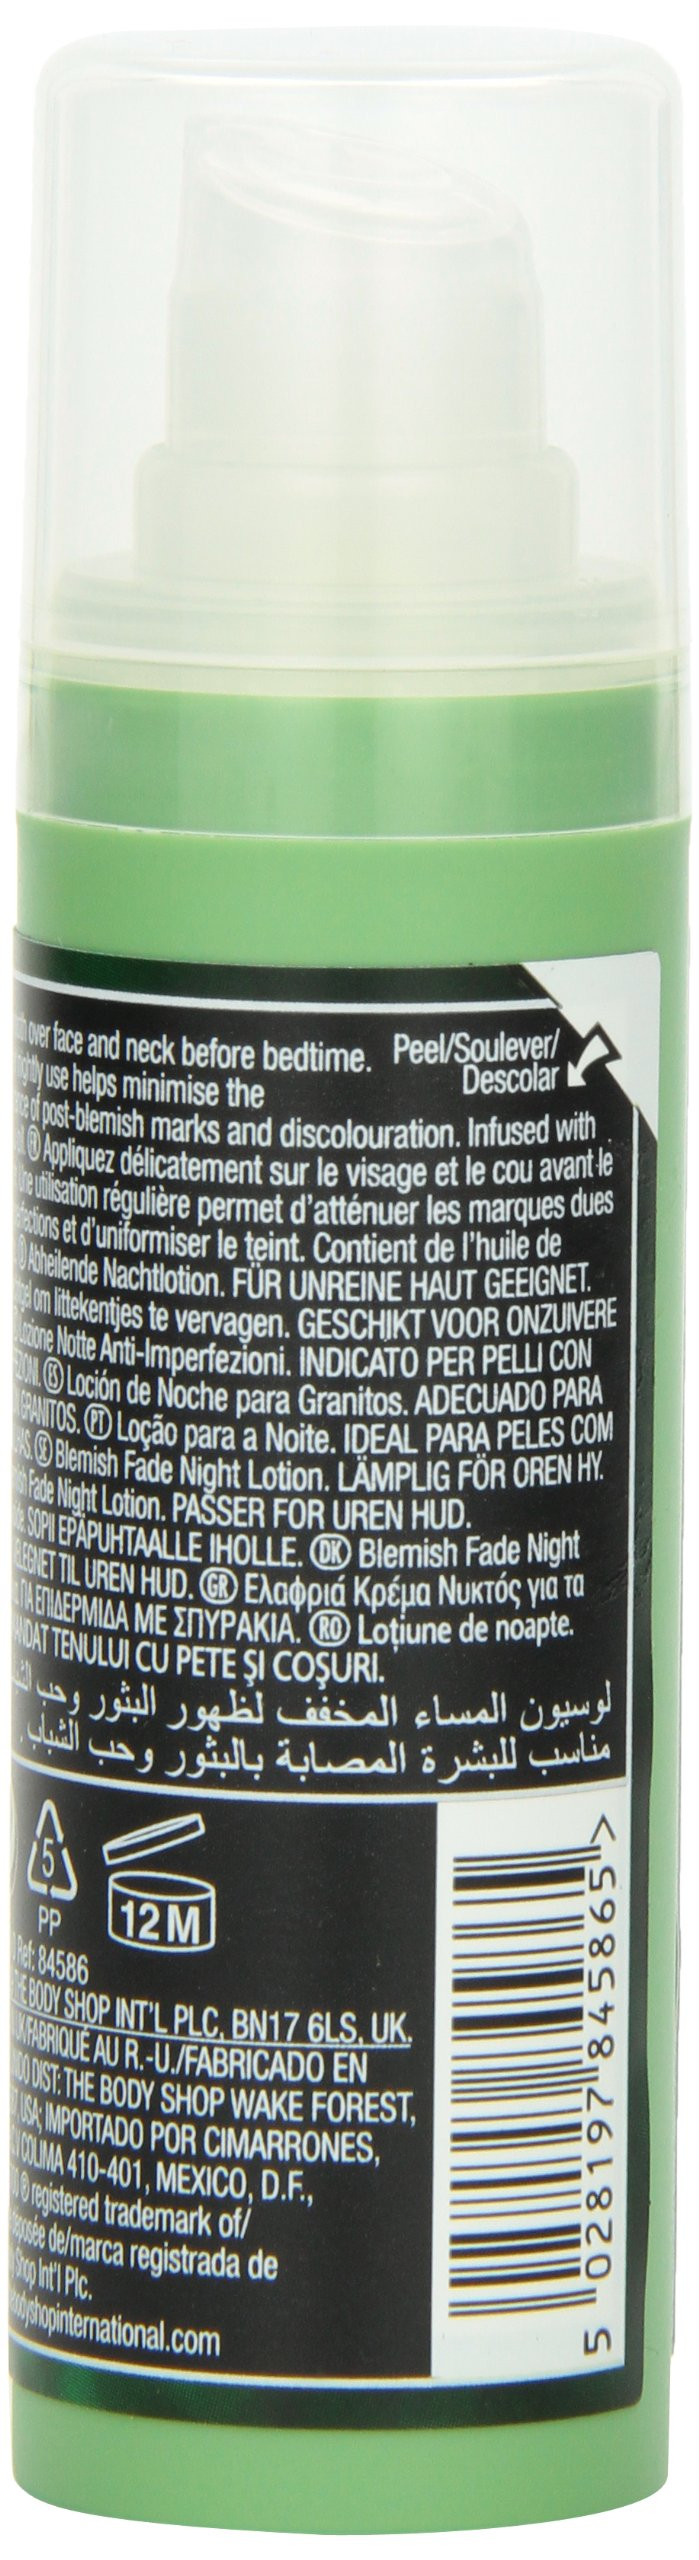 The Body Shop Tea Tree Night Lotion, 1 Oz by The Body Shop